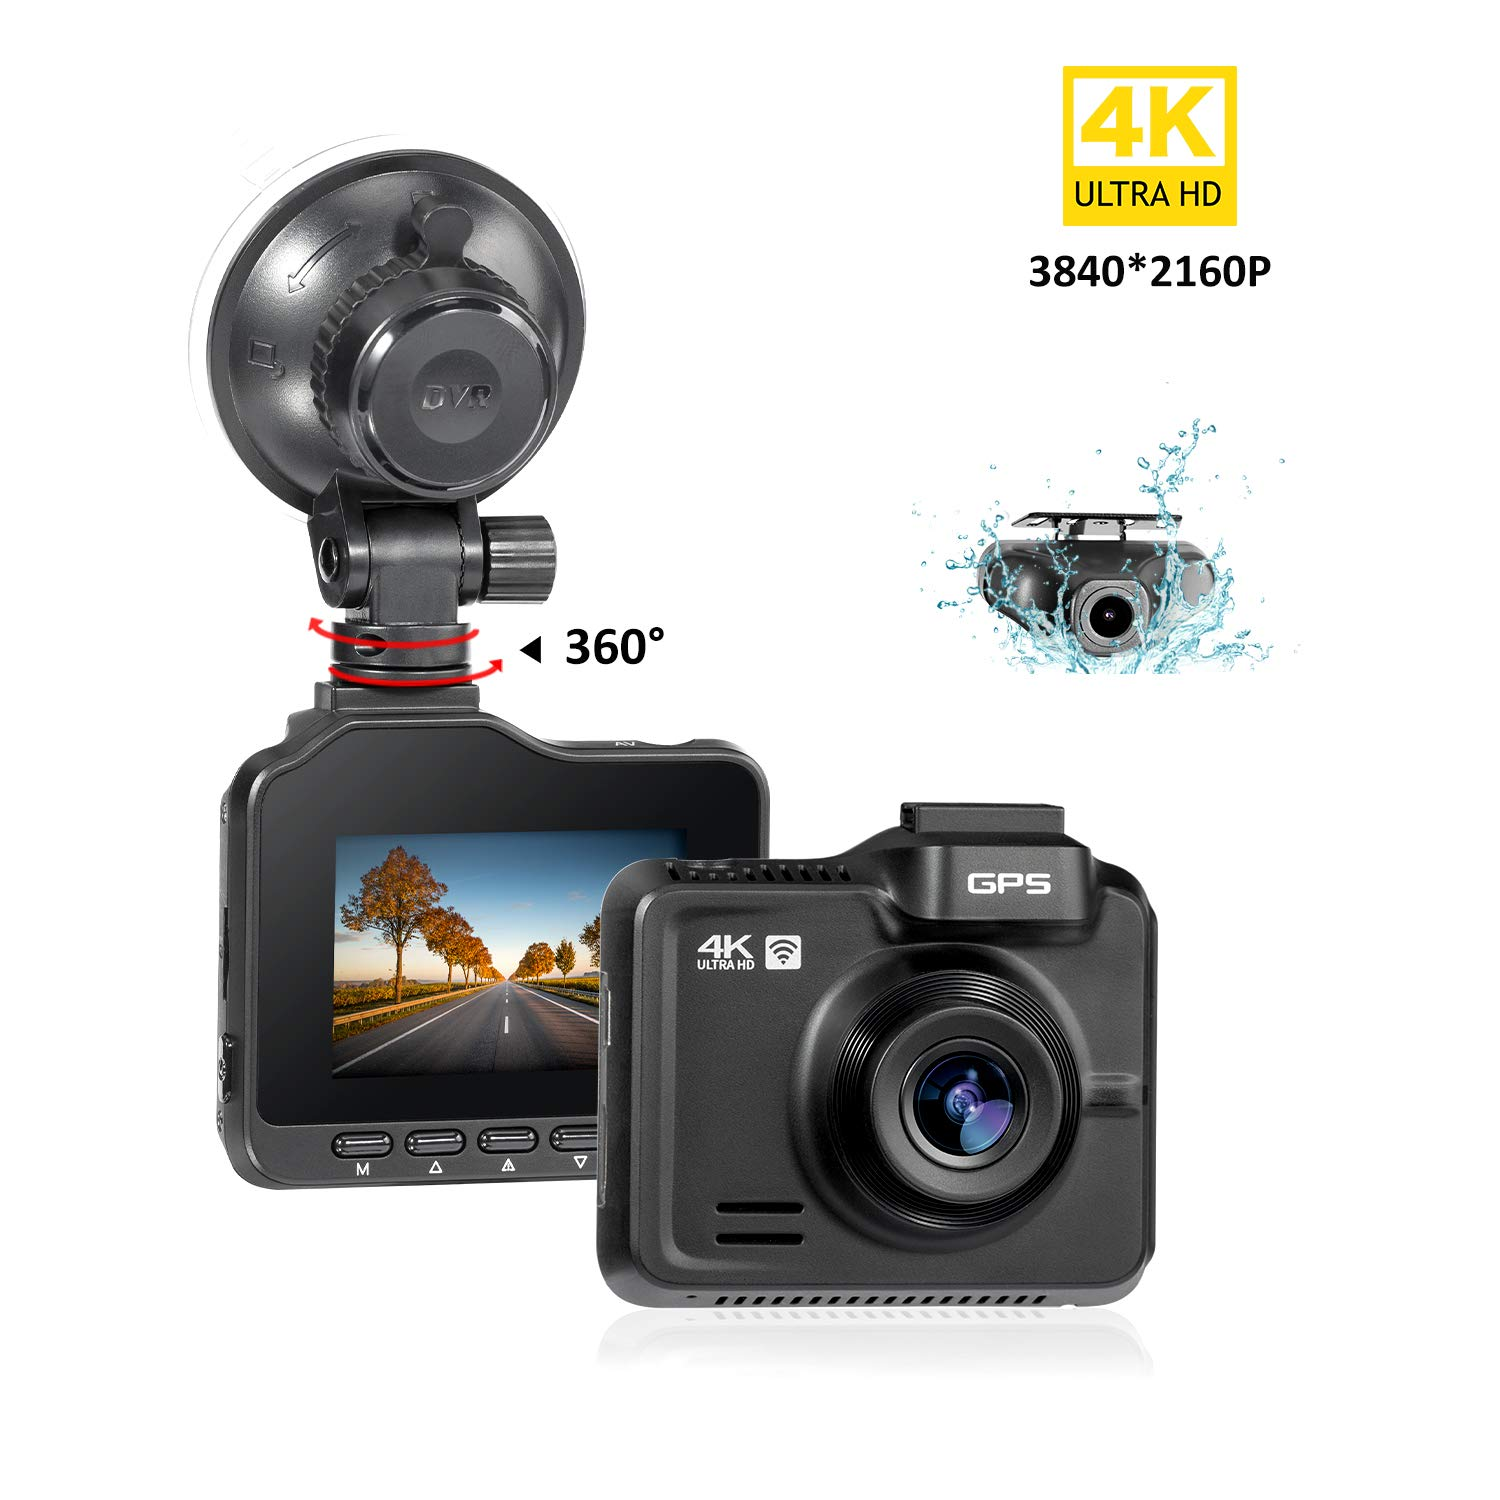 Lifechaser Dual Dash Cam 4K+1080P Front and Rear Car Camera 3840x2160P WiFi GPS Night Vision, 2.4'' IPS Screen, 170° Wide Angle, Parking Mode, WDR, Time Lapse, G-Sensor, Loop Recording for Cars, Truck